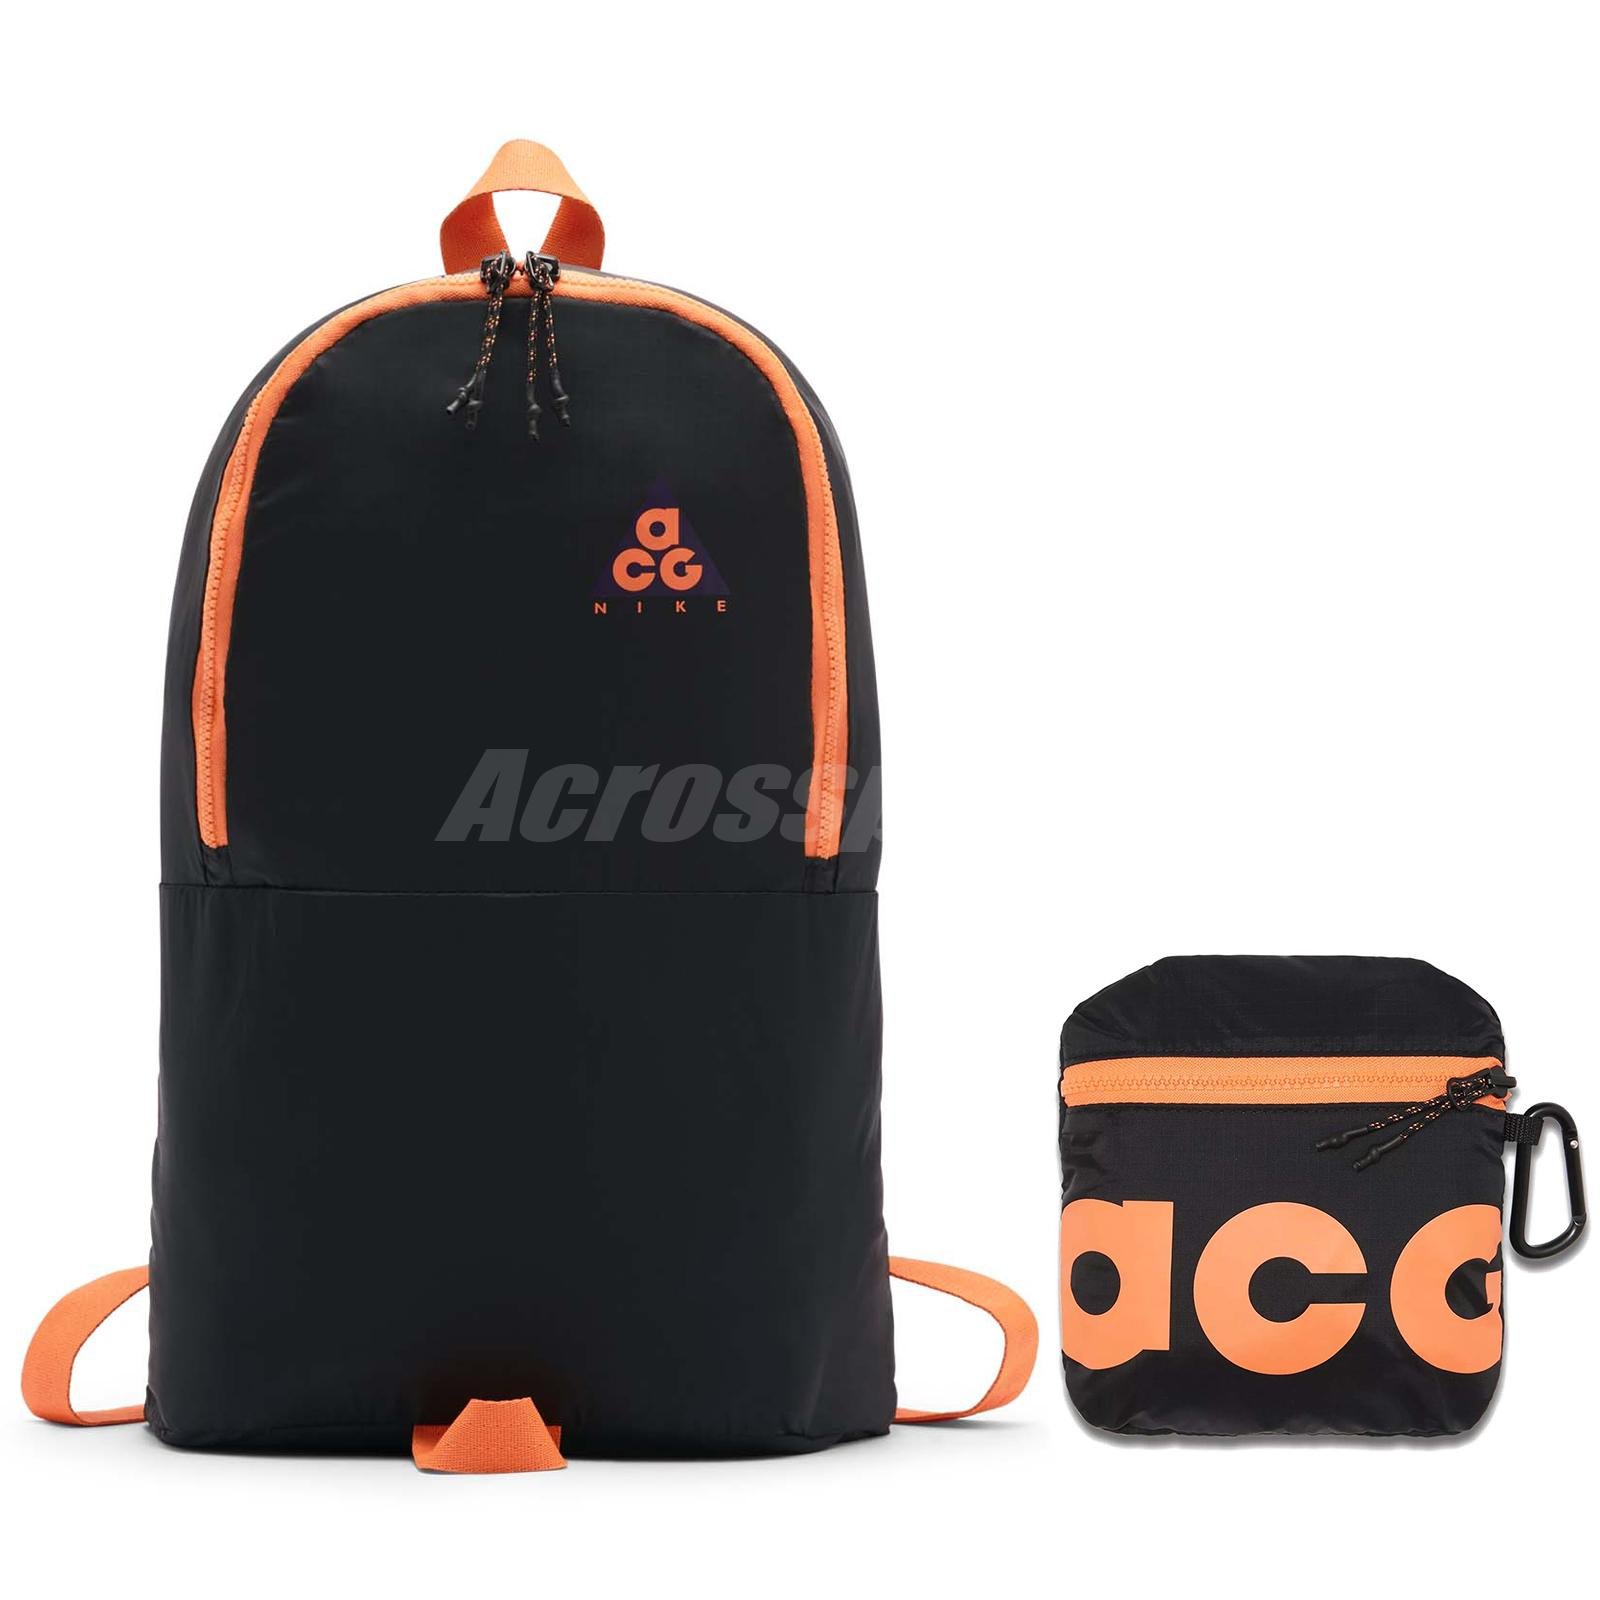 4475709a09 Details about Nike ACG Packable Backpack NSW Bag Workout Running Bright  Mandarin BA5841-537